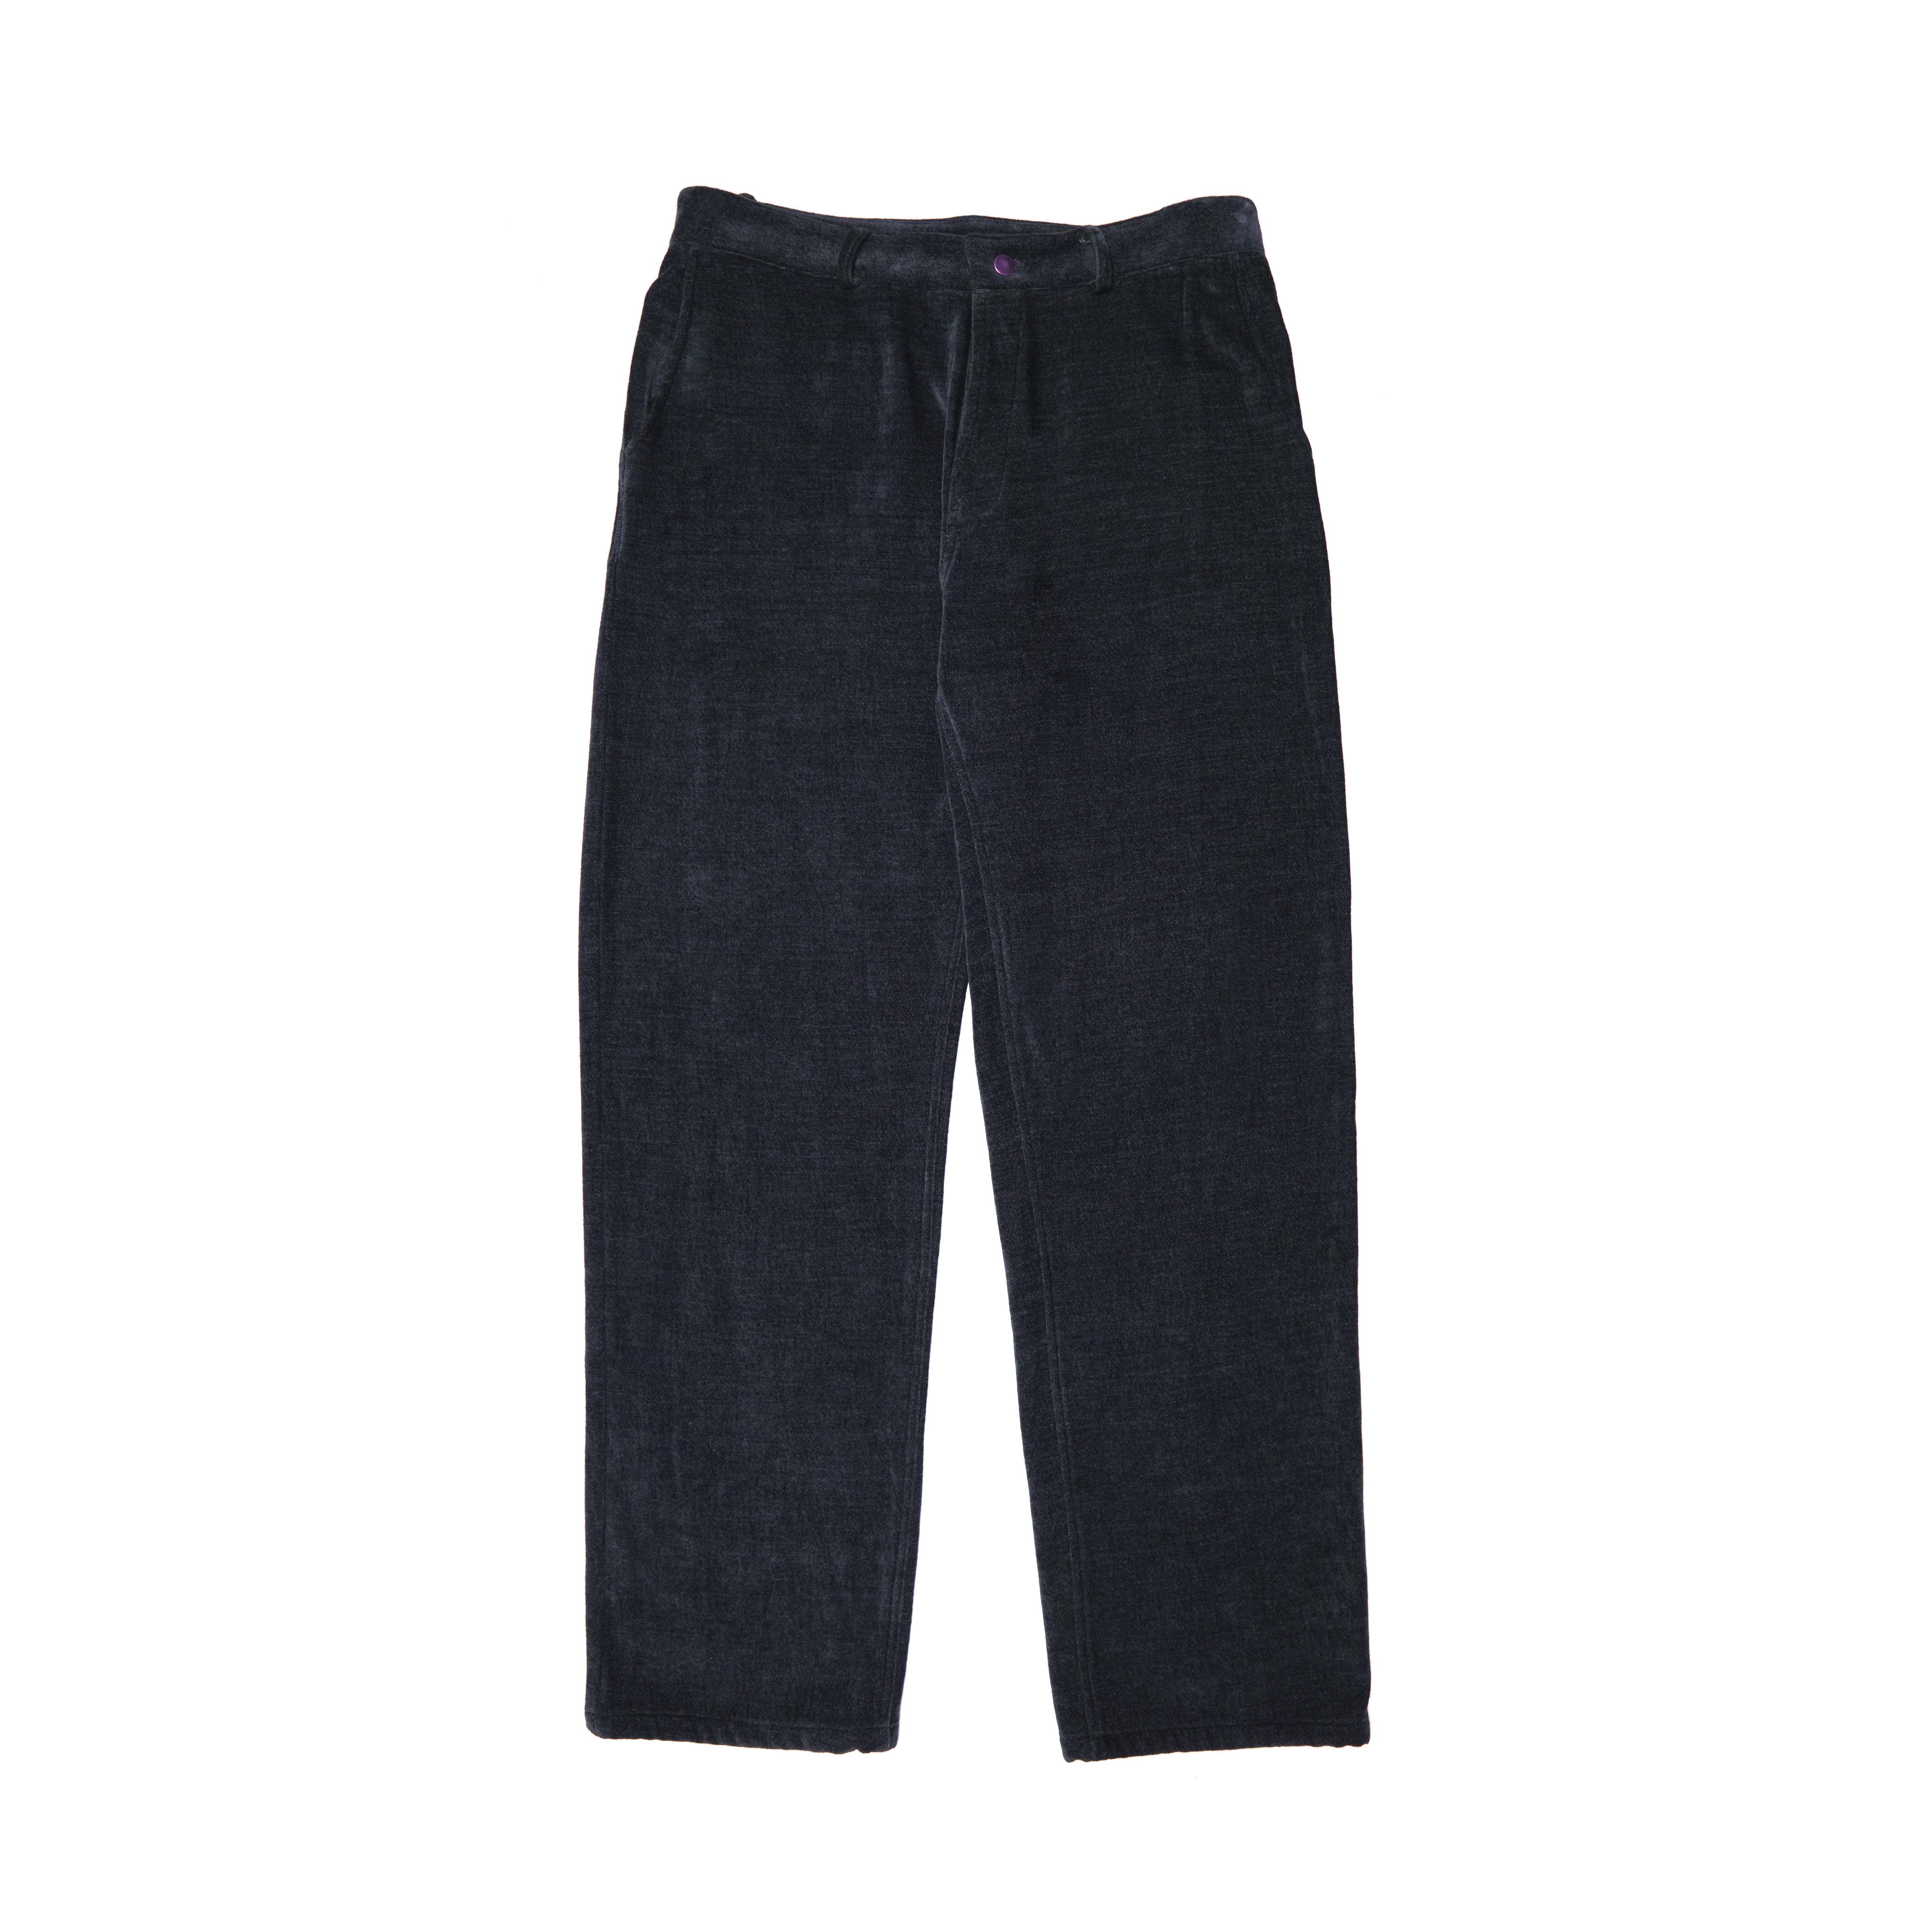 Work Wear Trousers - Plain Charcoal Weave